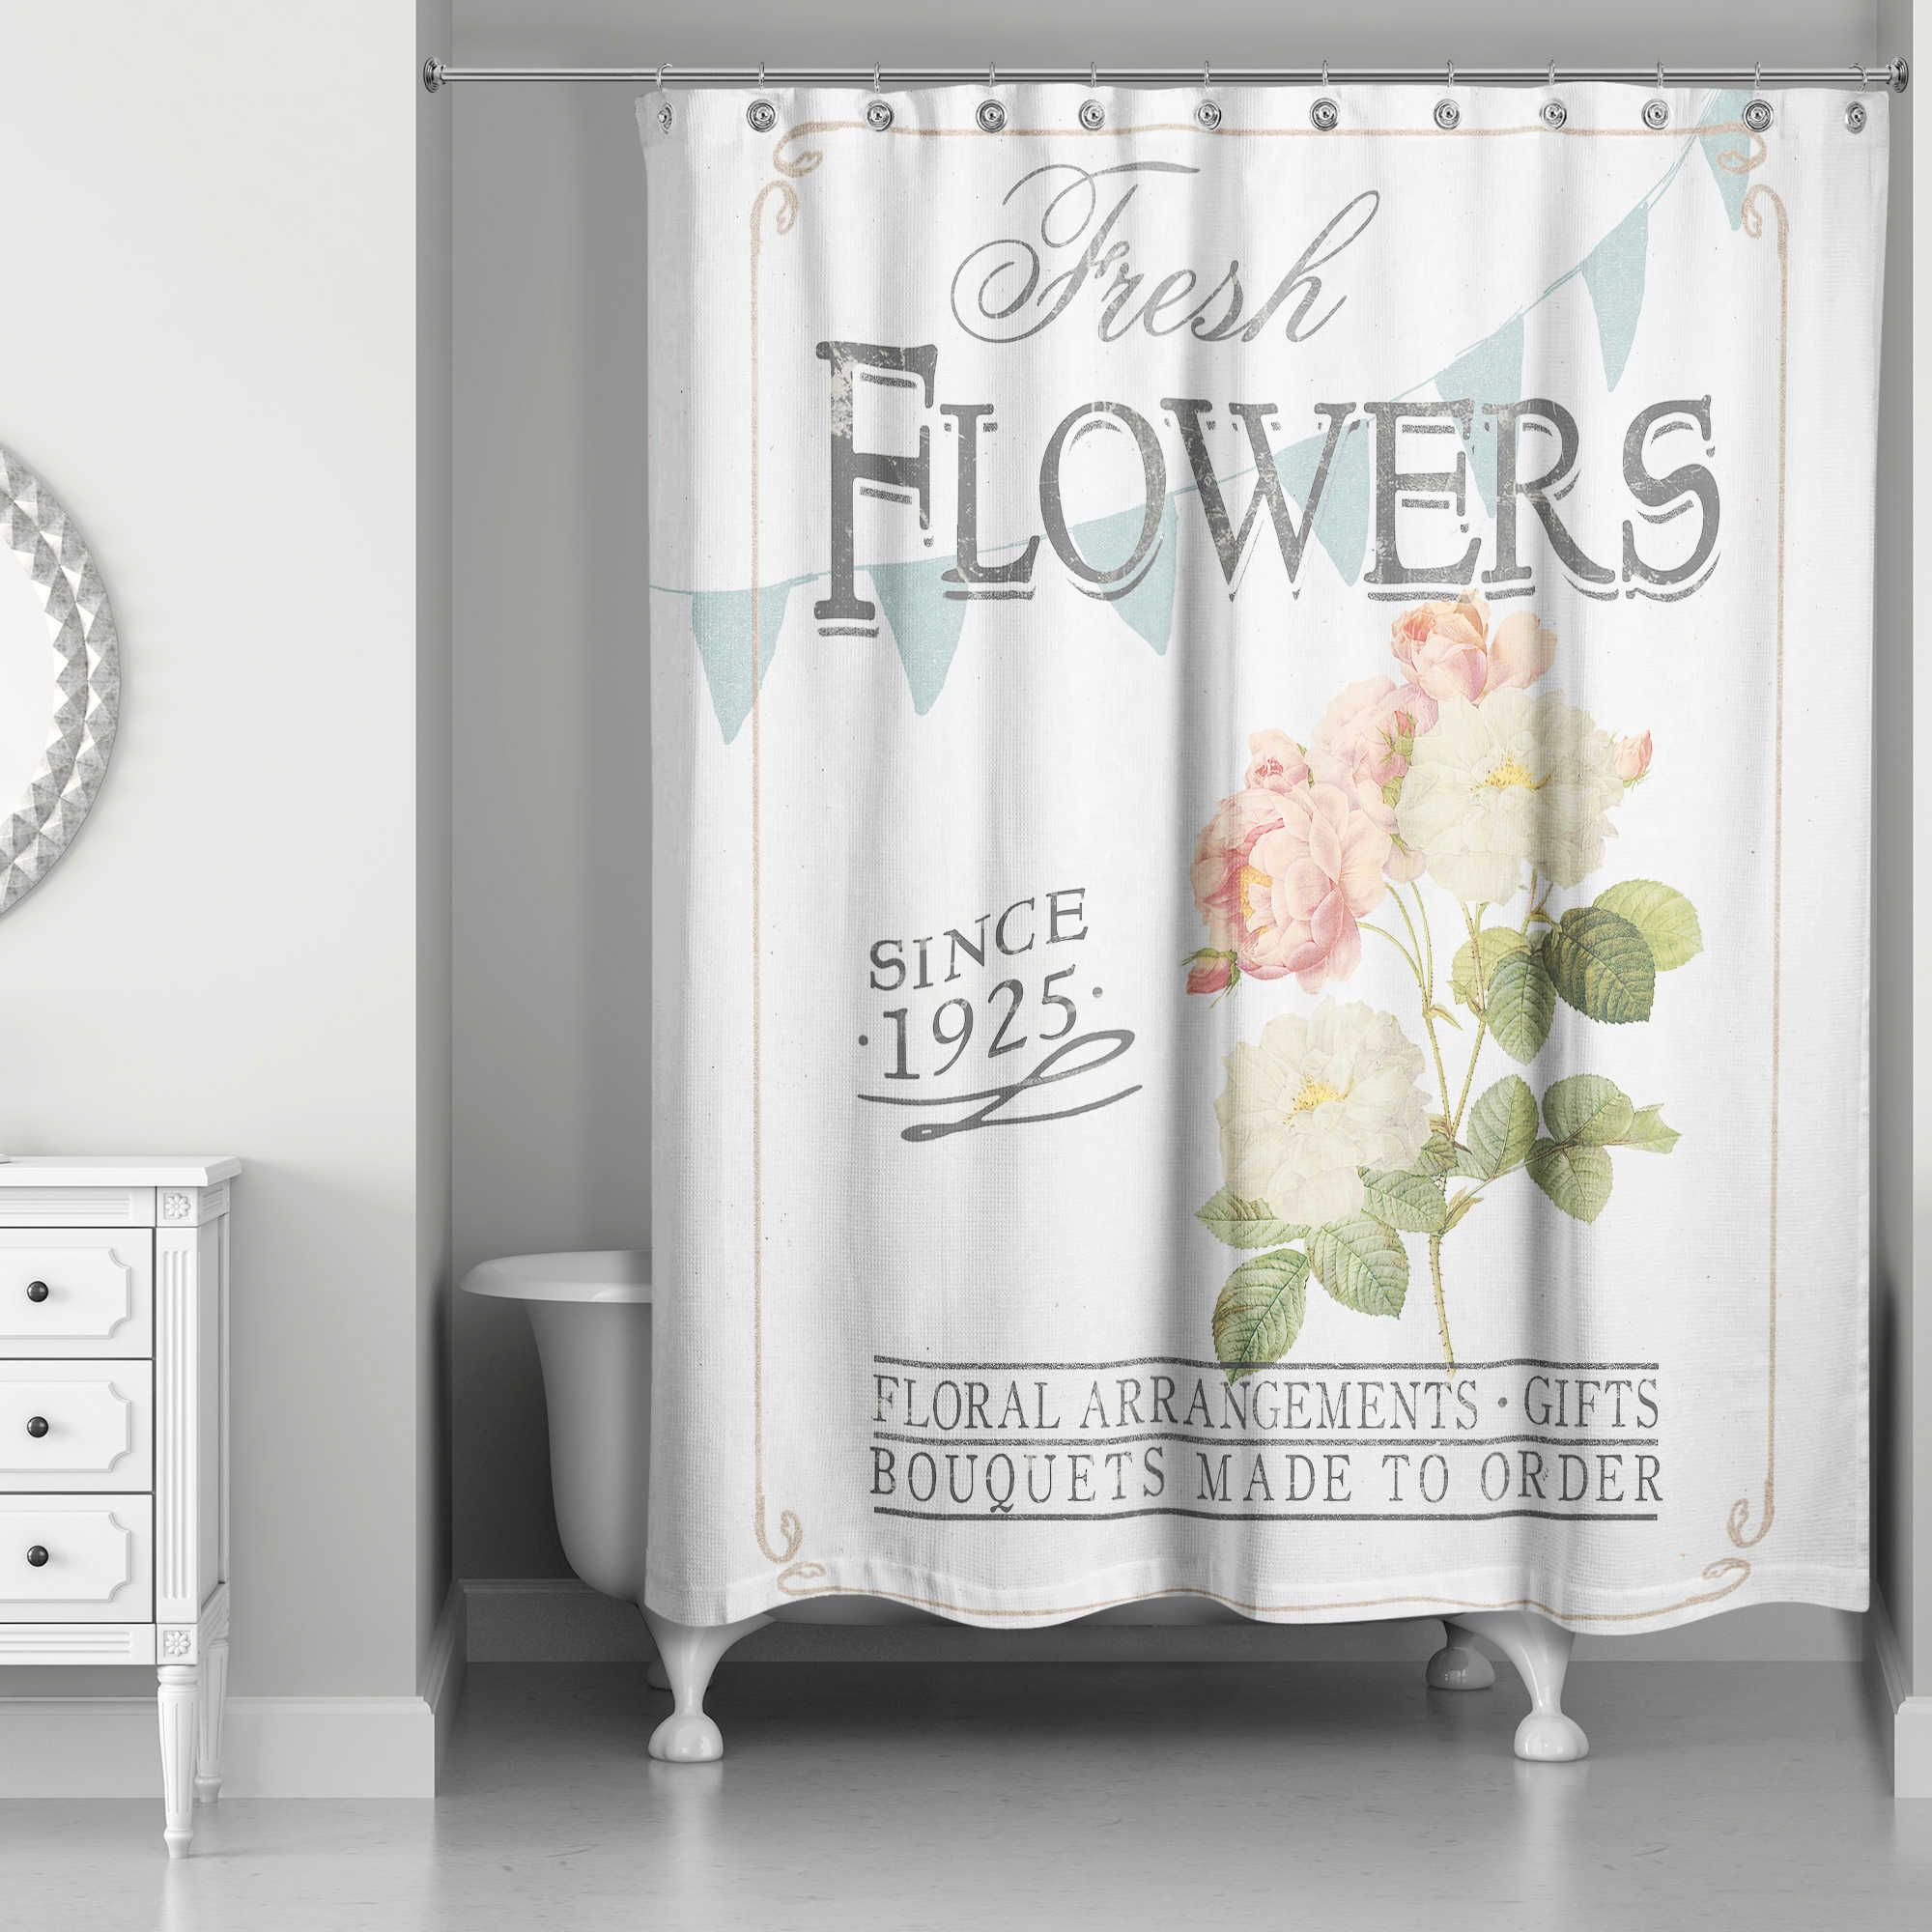 Designs Direct Fresh Flowers Shower Curtain Flower Shower